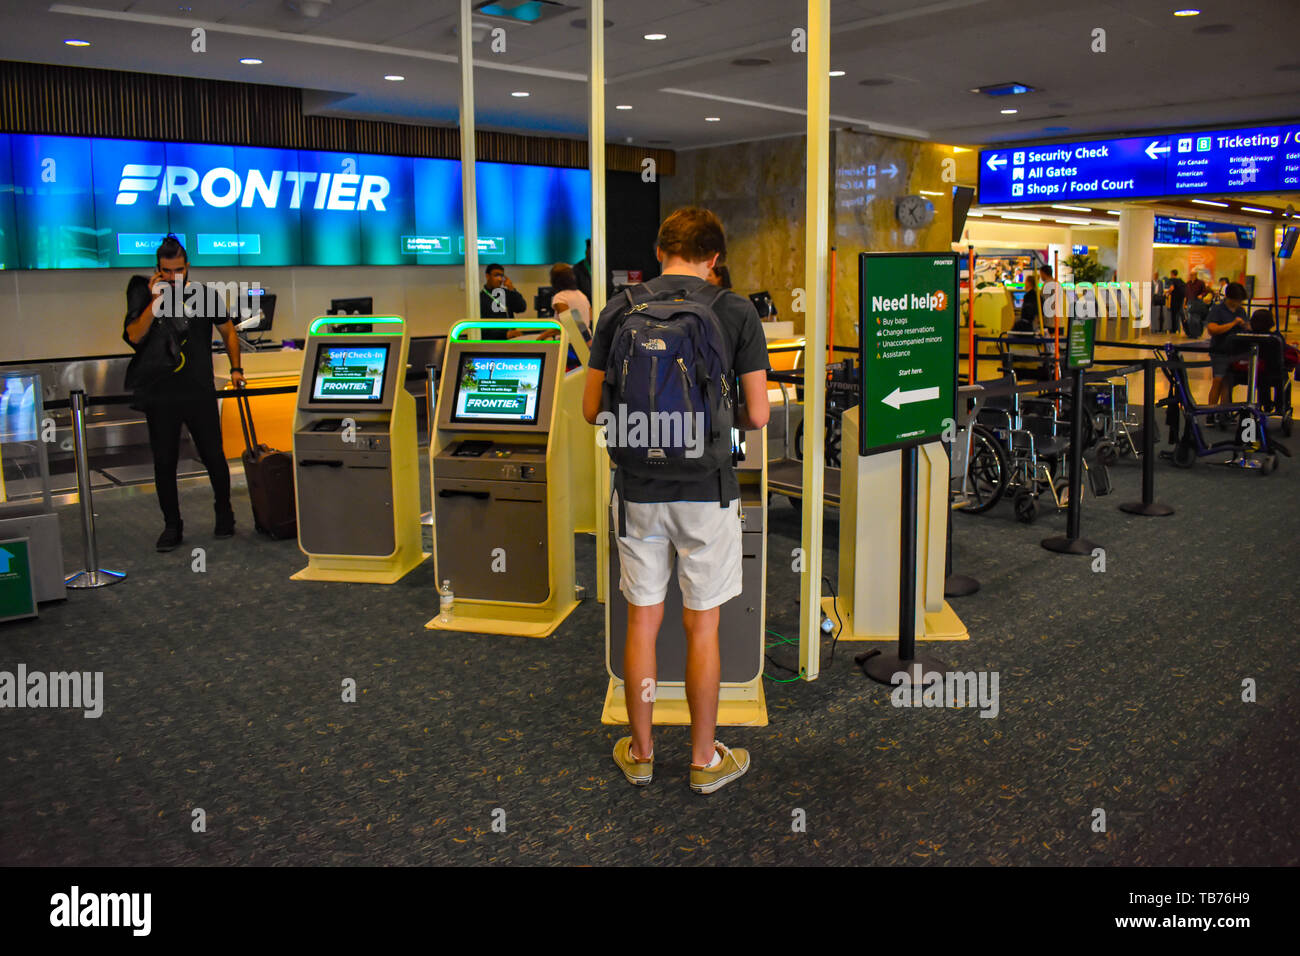 Orlando, Florida.  March 01, 2019. Man using Self service check-in at Orlando International Airport . - Stock Image